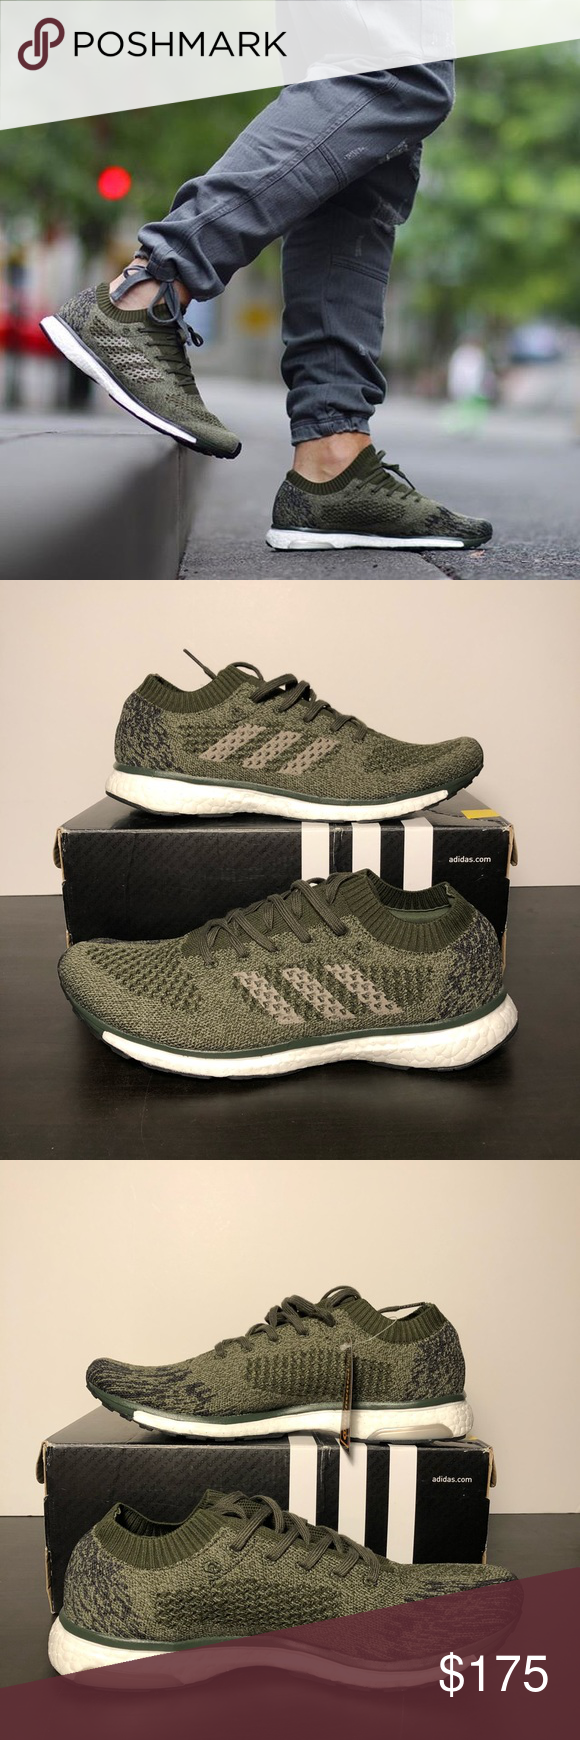 buy online 44fe8 5e6c9 Adidas adizero prime LTD Olive Brand New Adidas Adizero Prime LTD Olive  Green Perfect sneakers for the springsummer Lightweight breathable prime  knit ...